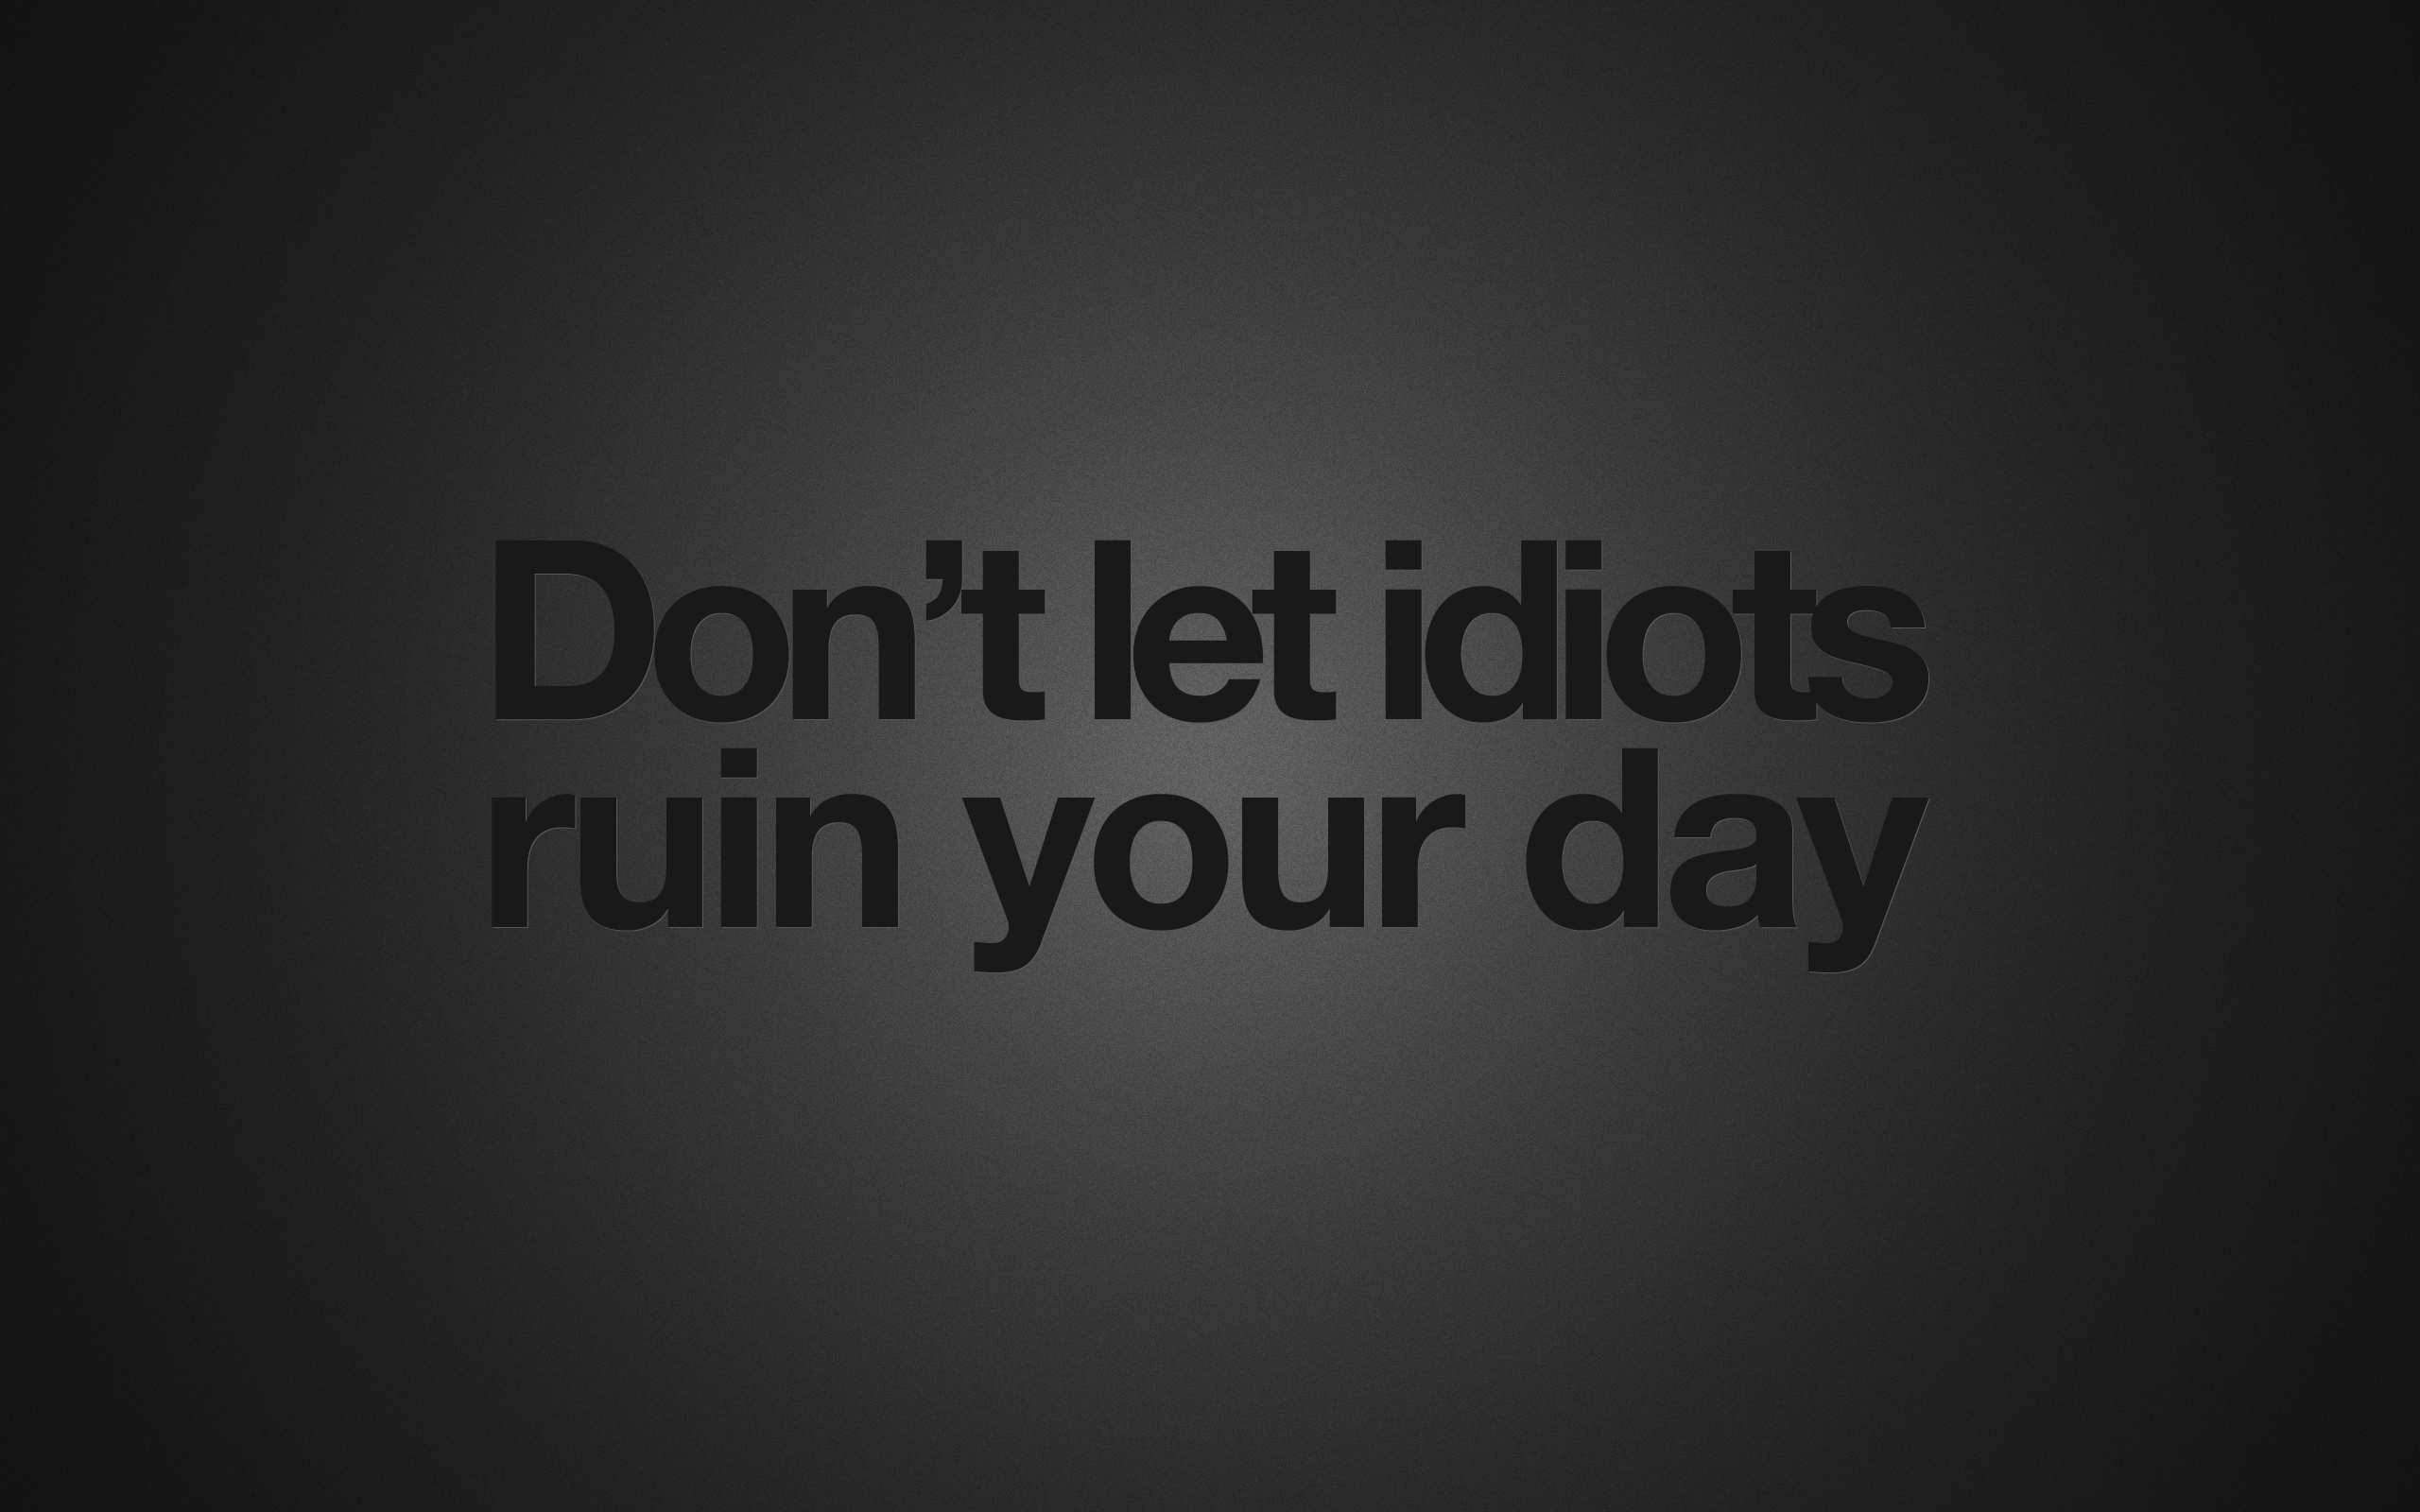 Pin by Shubham Mishra on Wallpaper pc | Motivational quotes wallpaper, Motivational wallpaper ...